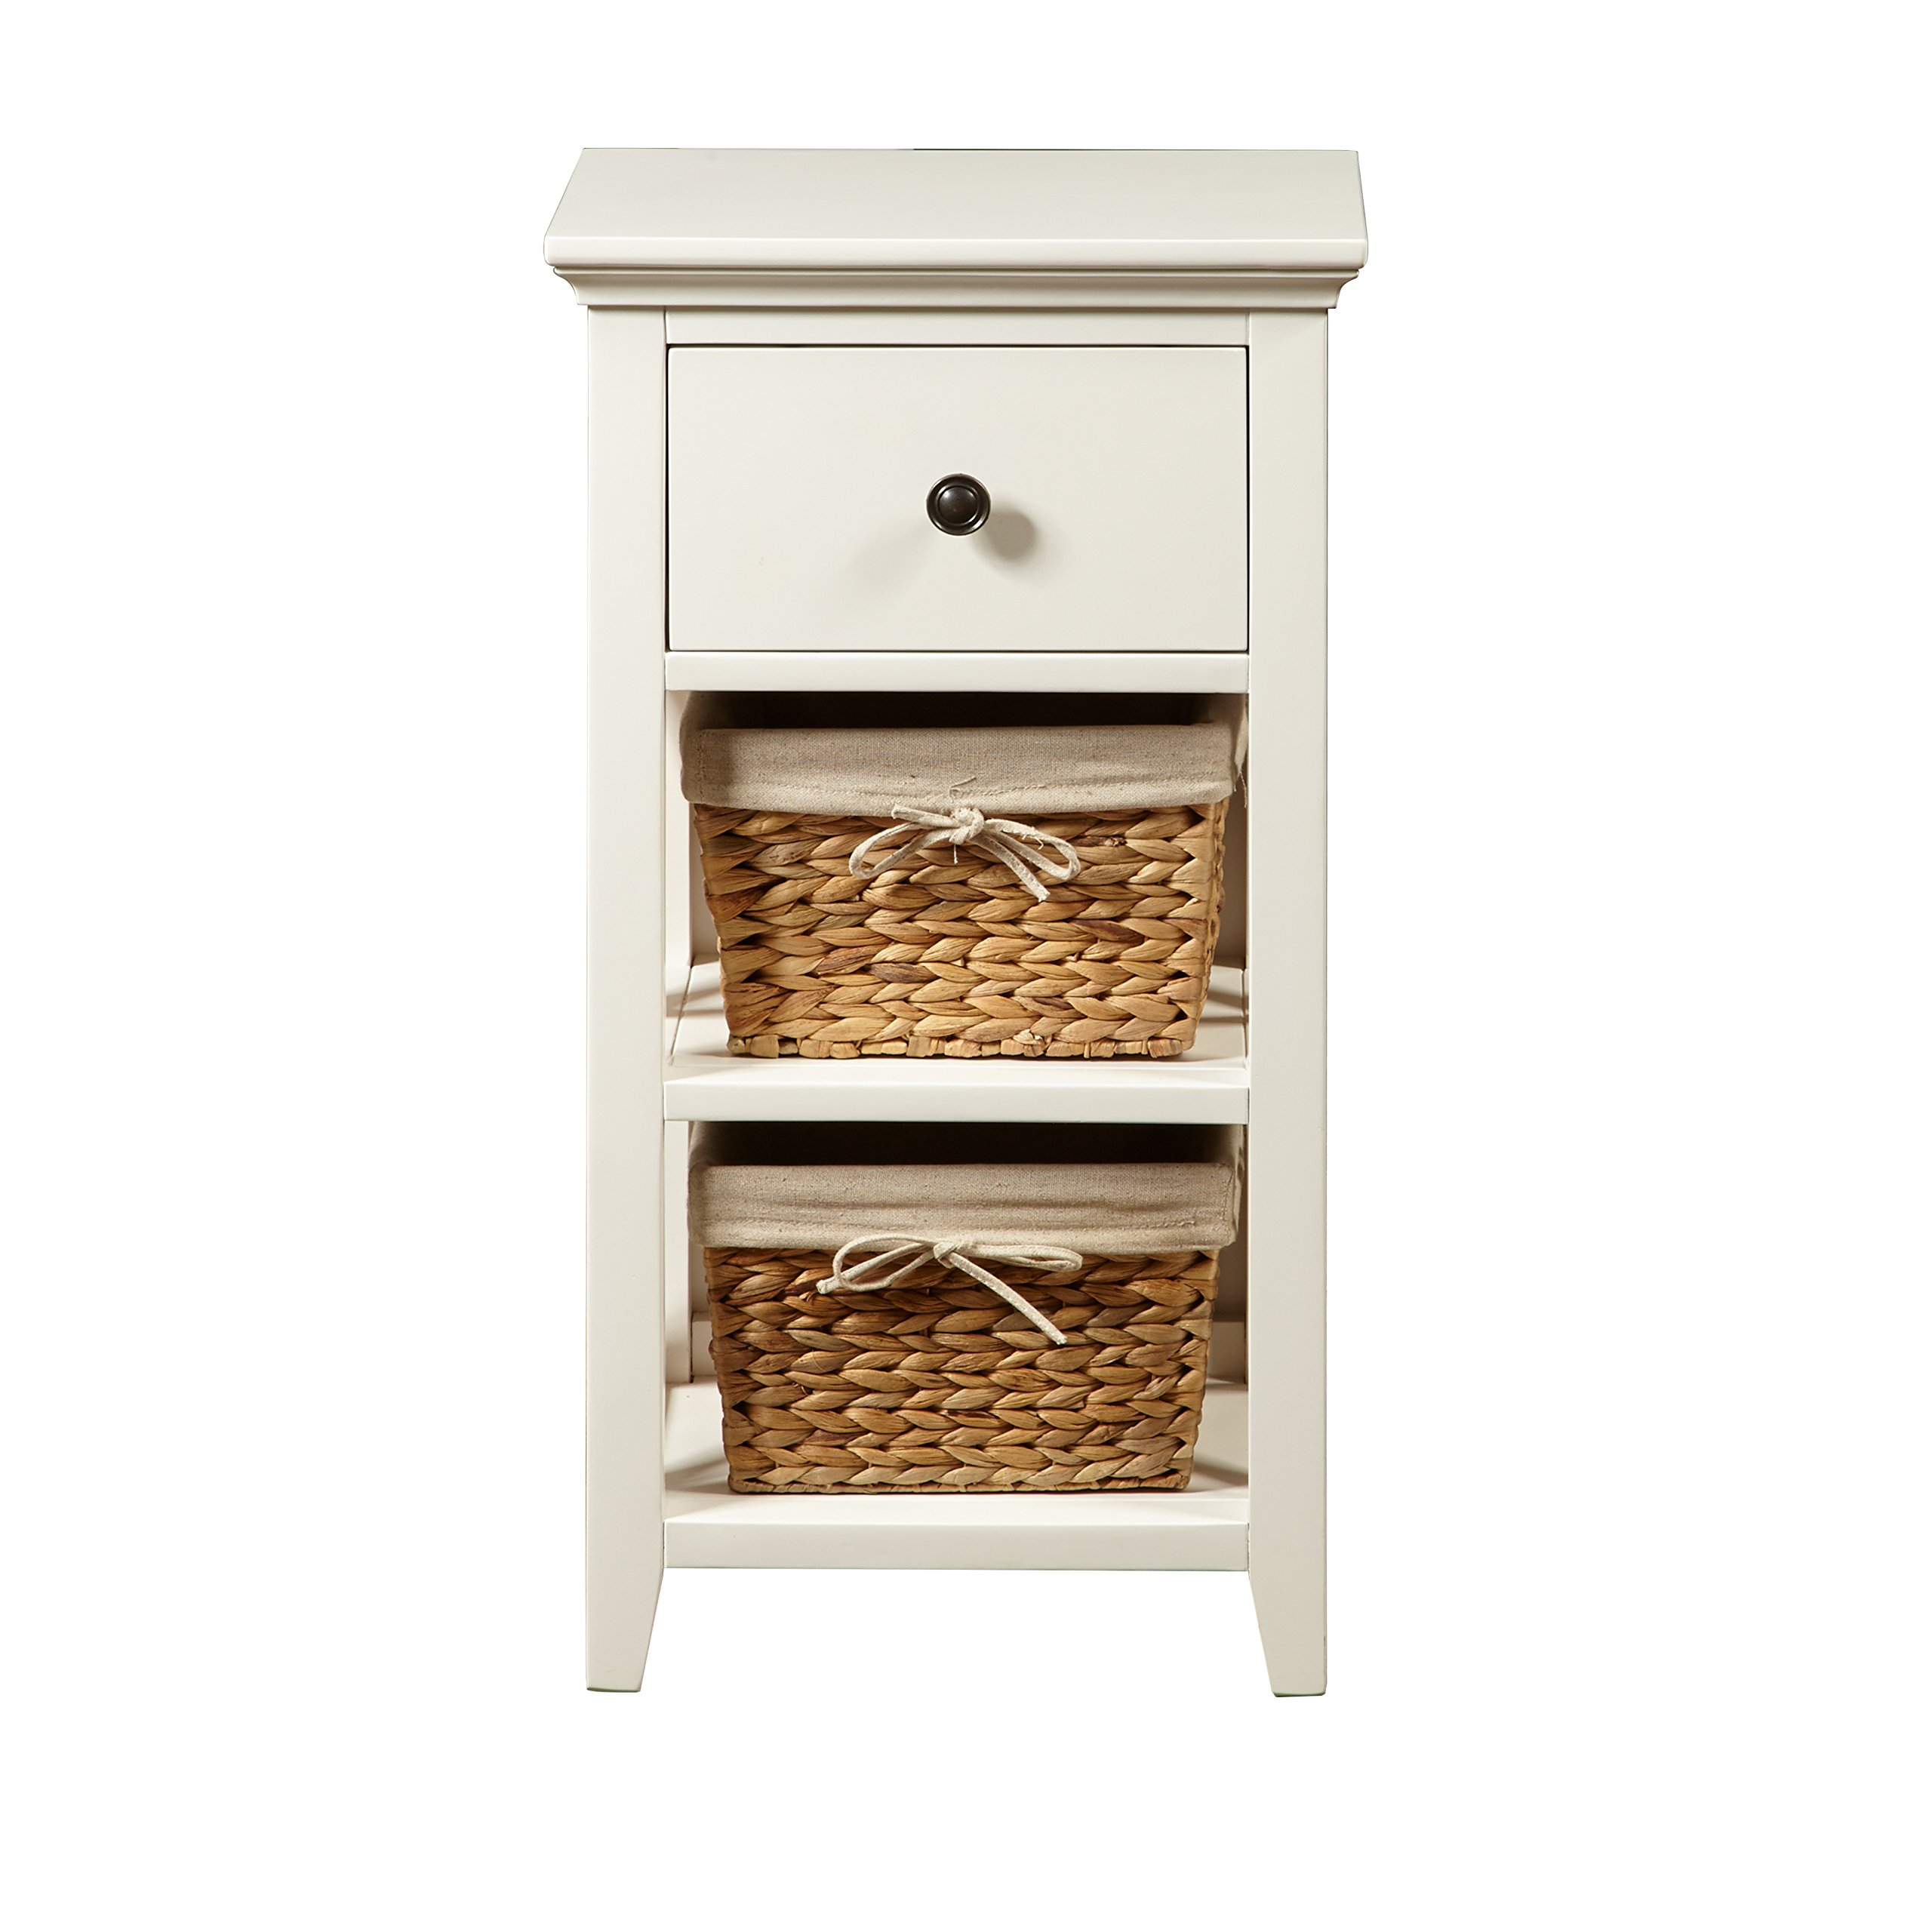 Pulaski DS-A049-857 Woven Wooden Basket Bathroom Storage Cabinet